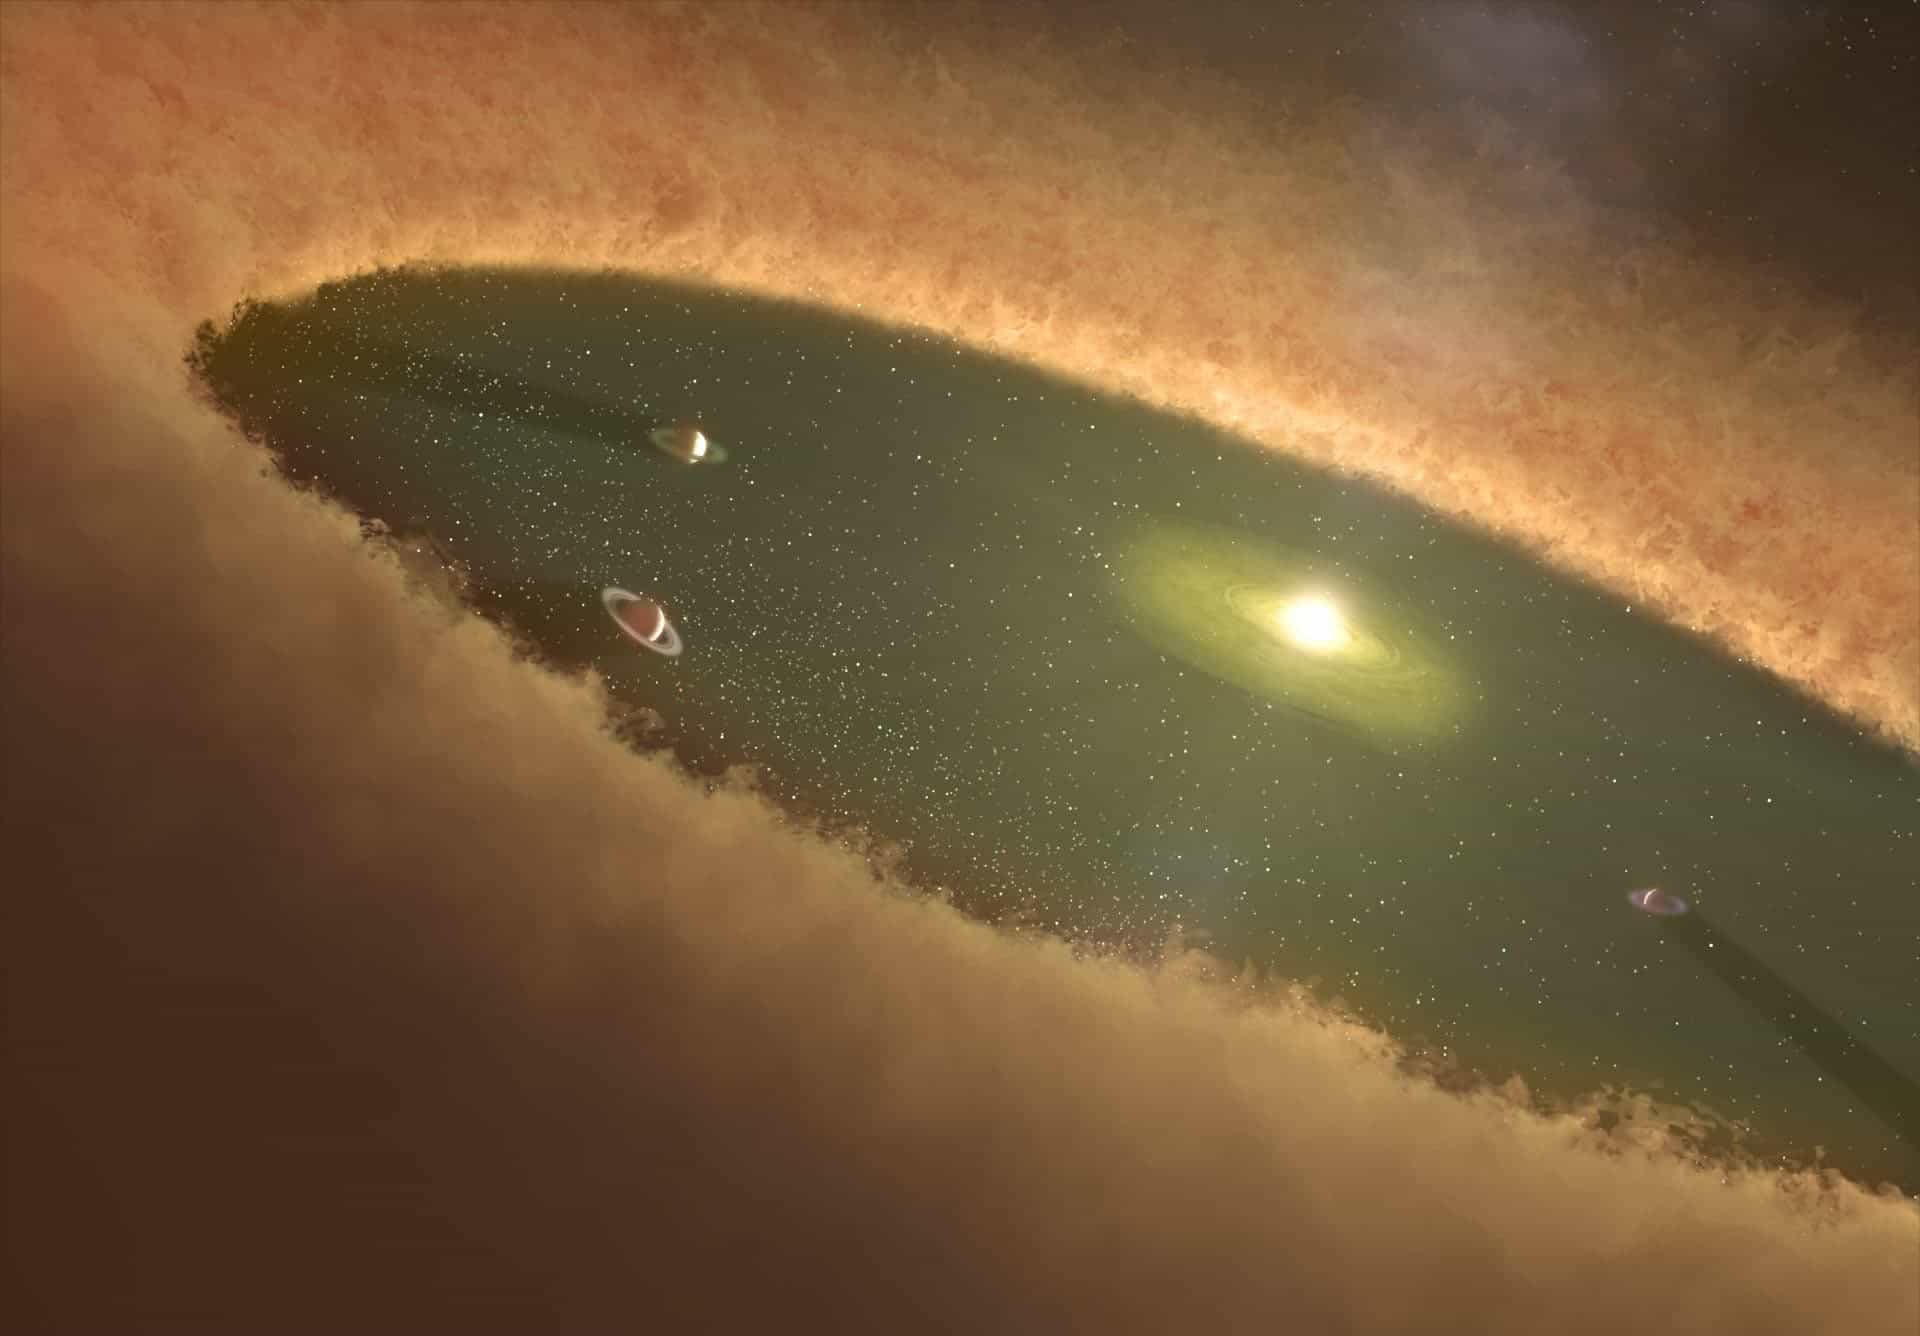 Scientist discovered prehistoric interstellar dust which formed Earth and Solar System